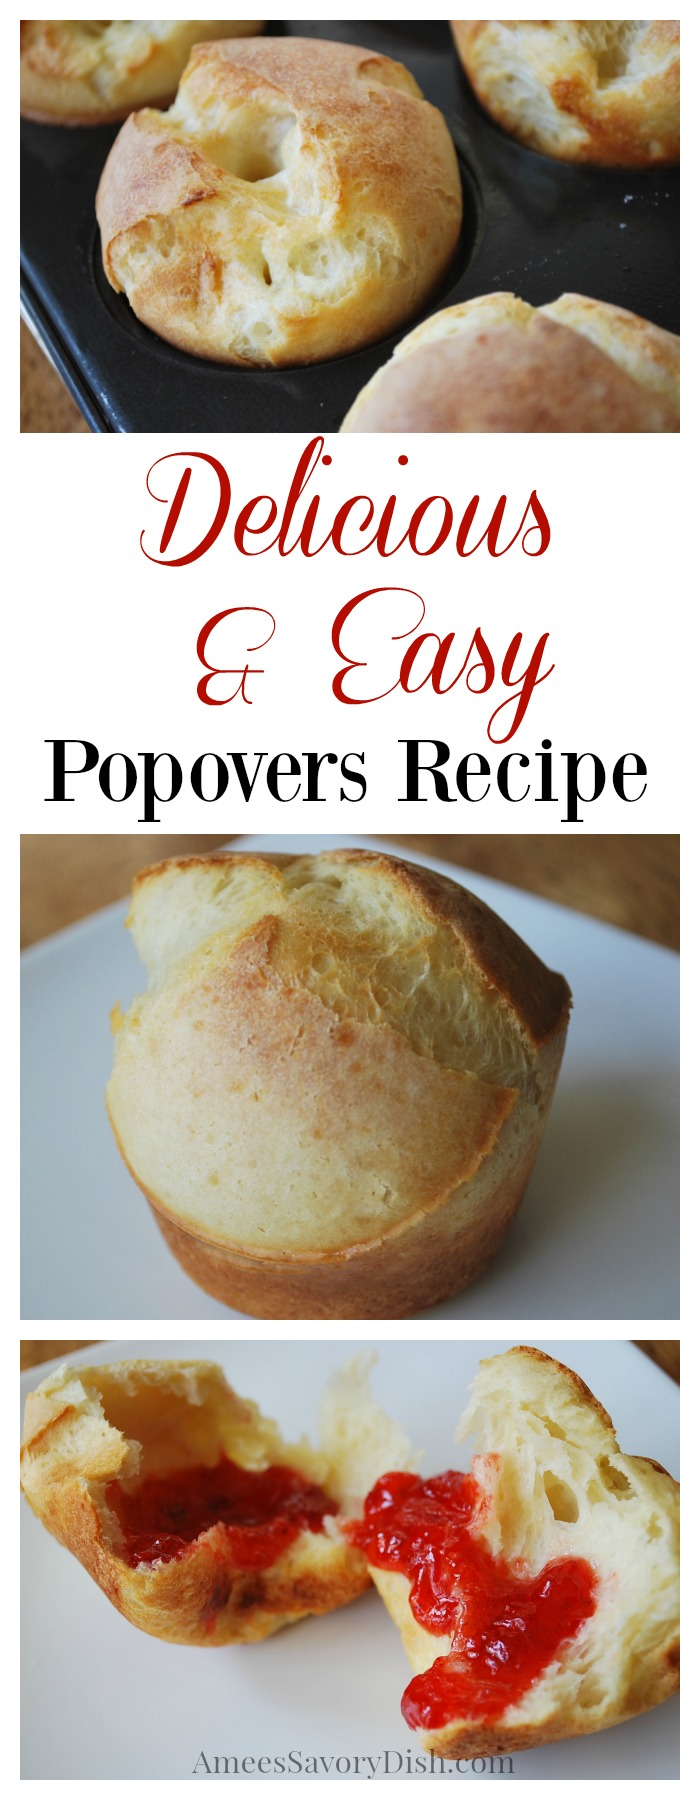 Delicious & Easy Classic Popovers Recipe via @Ameessavorydish